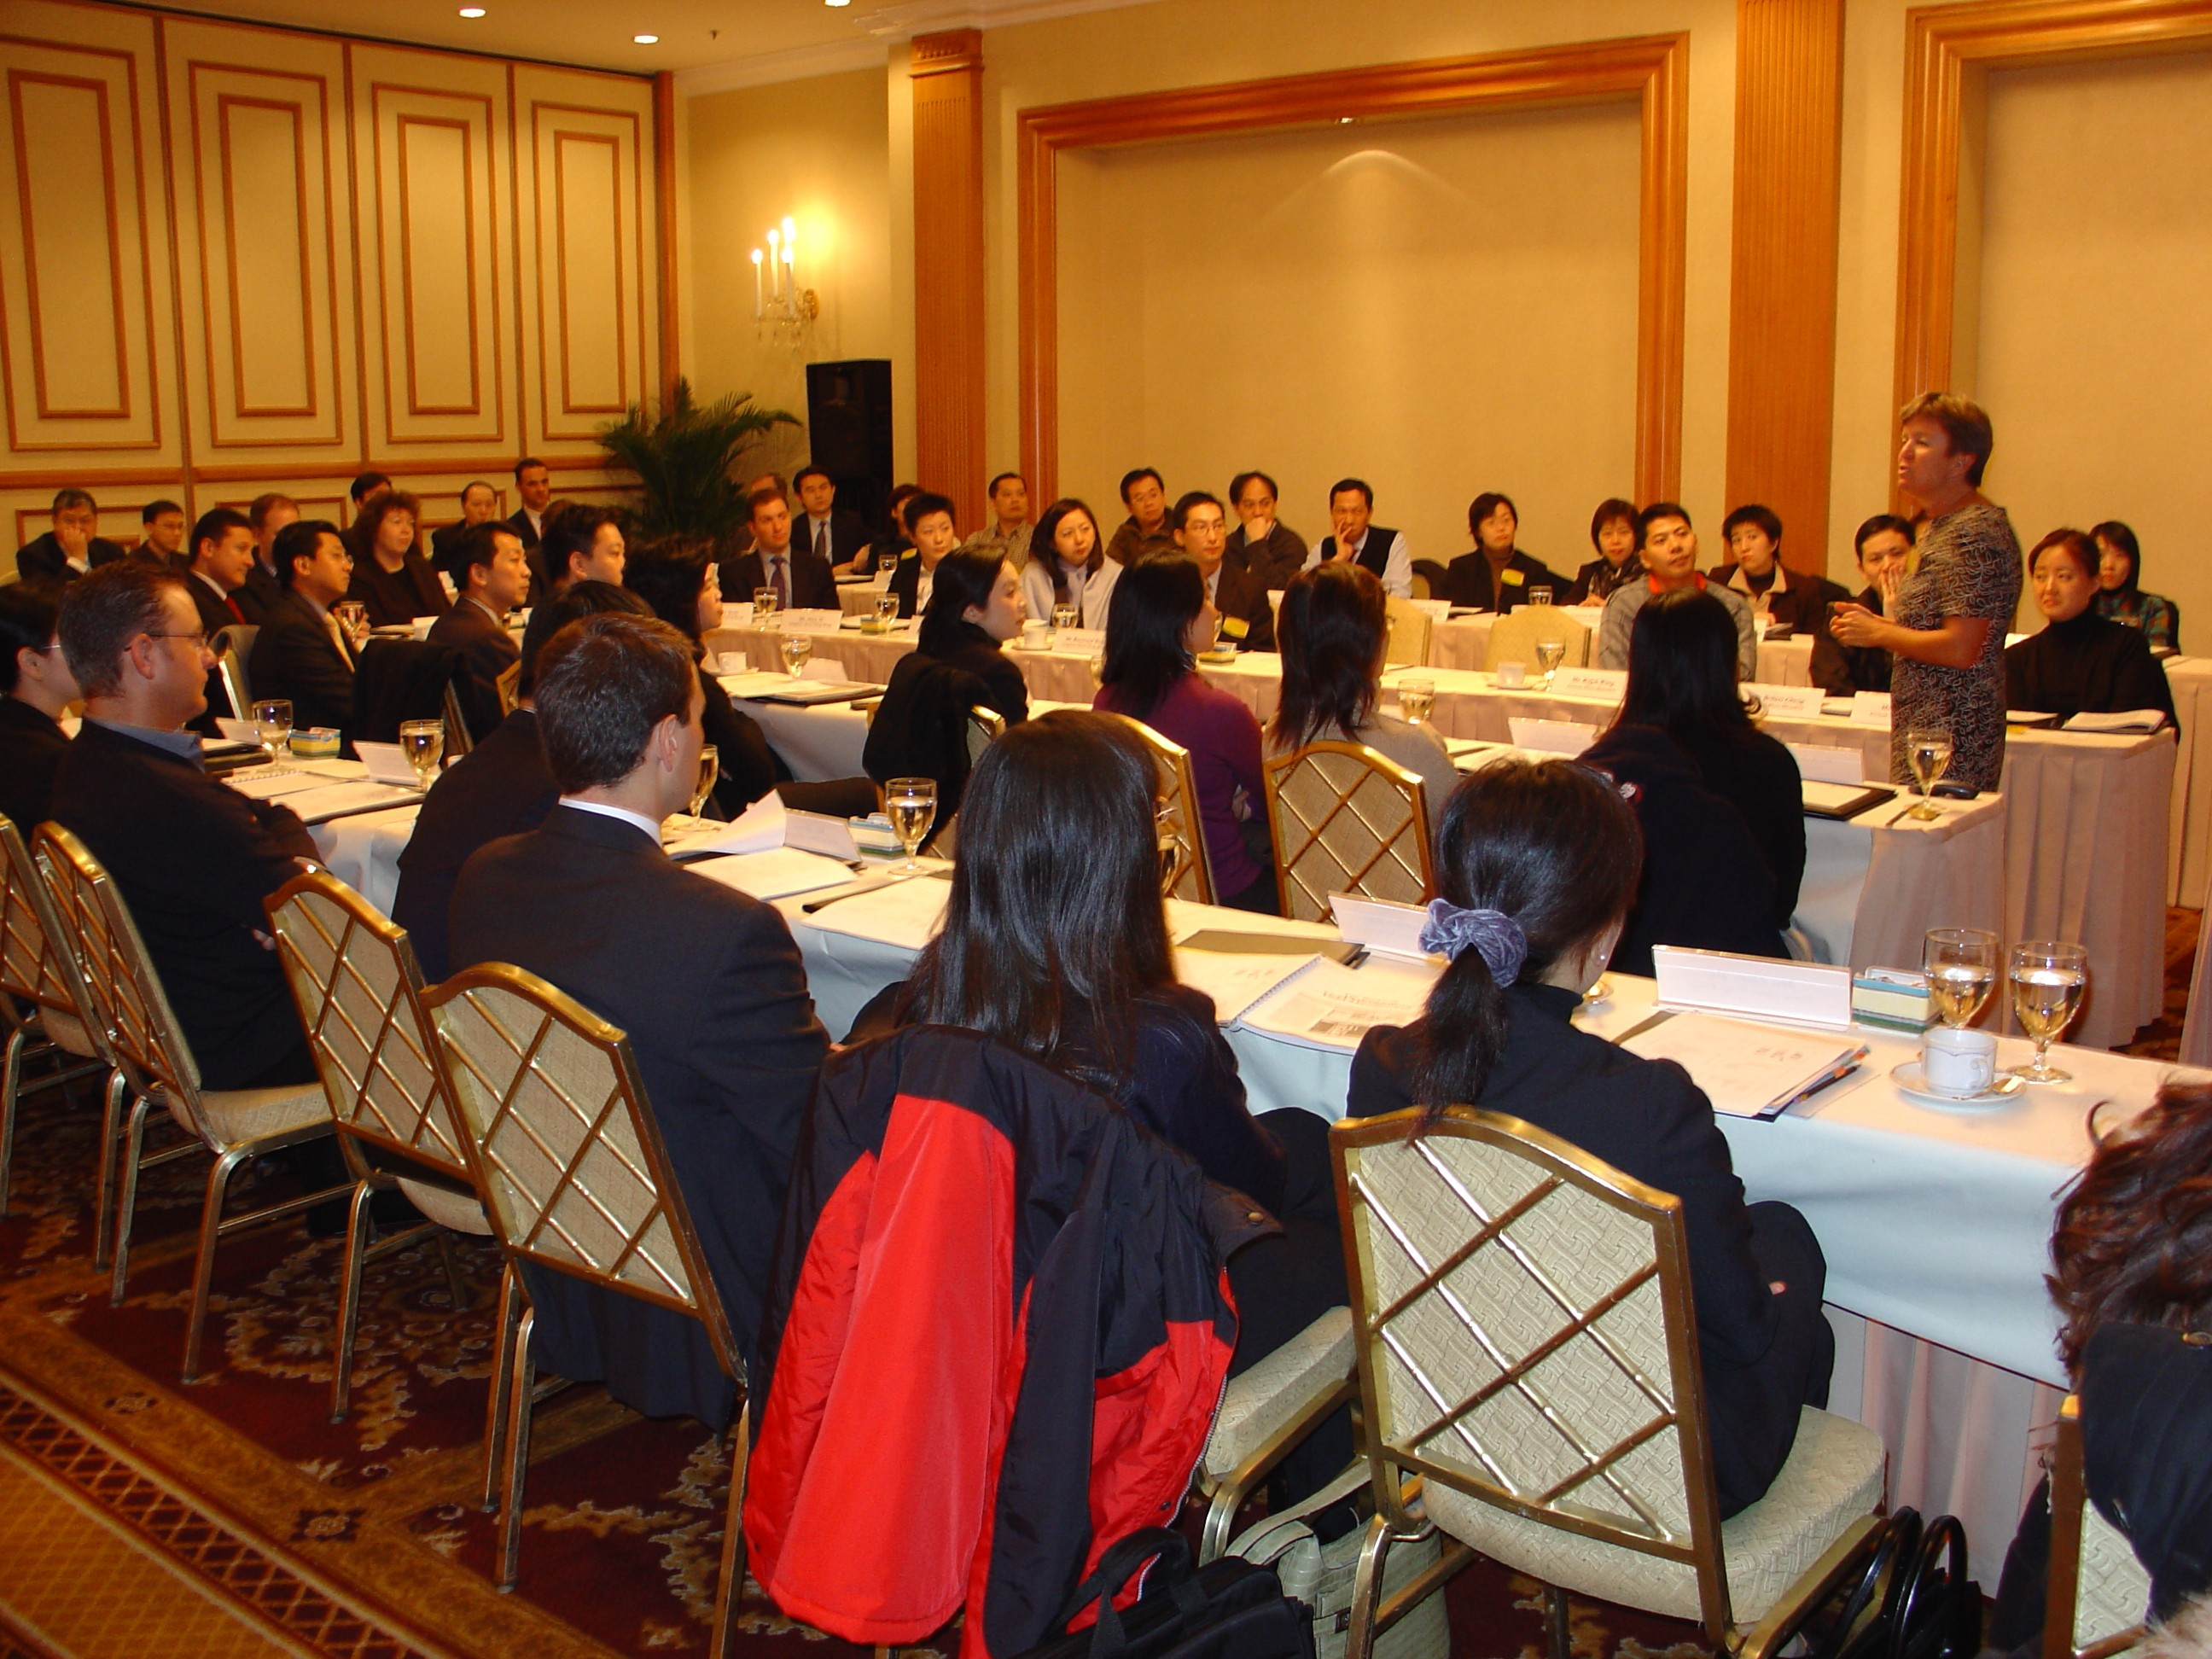 cuhk organizes executive training programme for the hospitality industry leaders at top management positions including general managers financial controllers revenue managers reservations managers and directors of